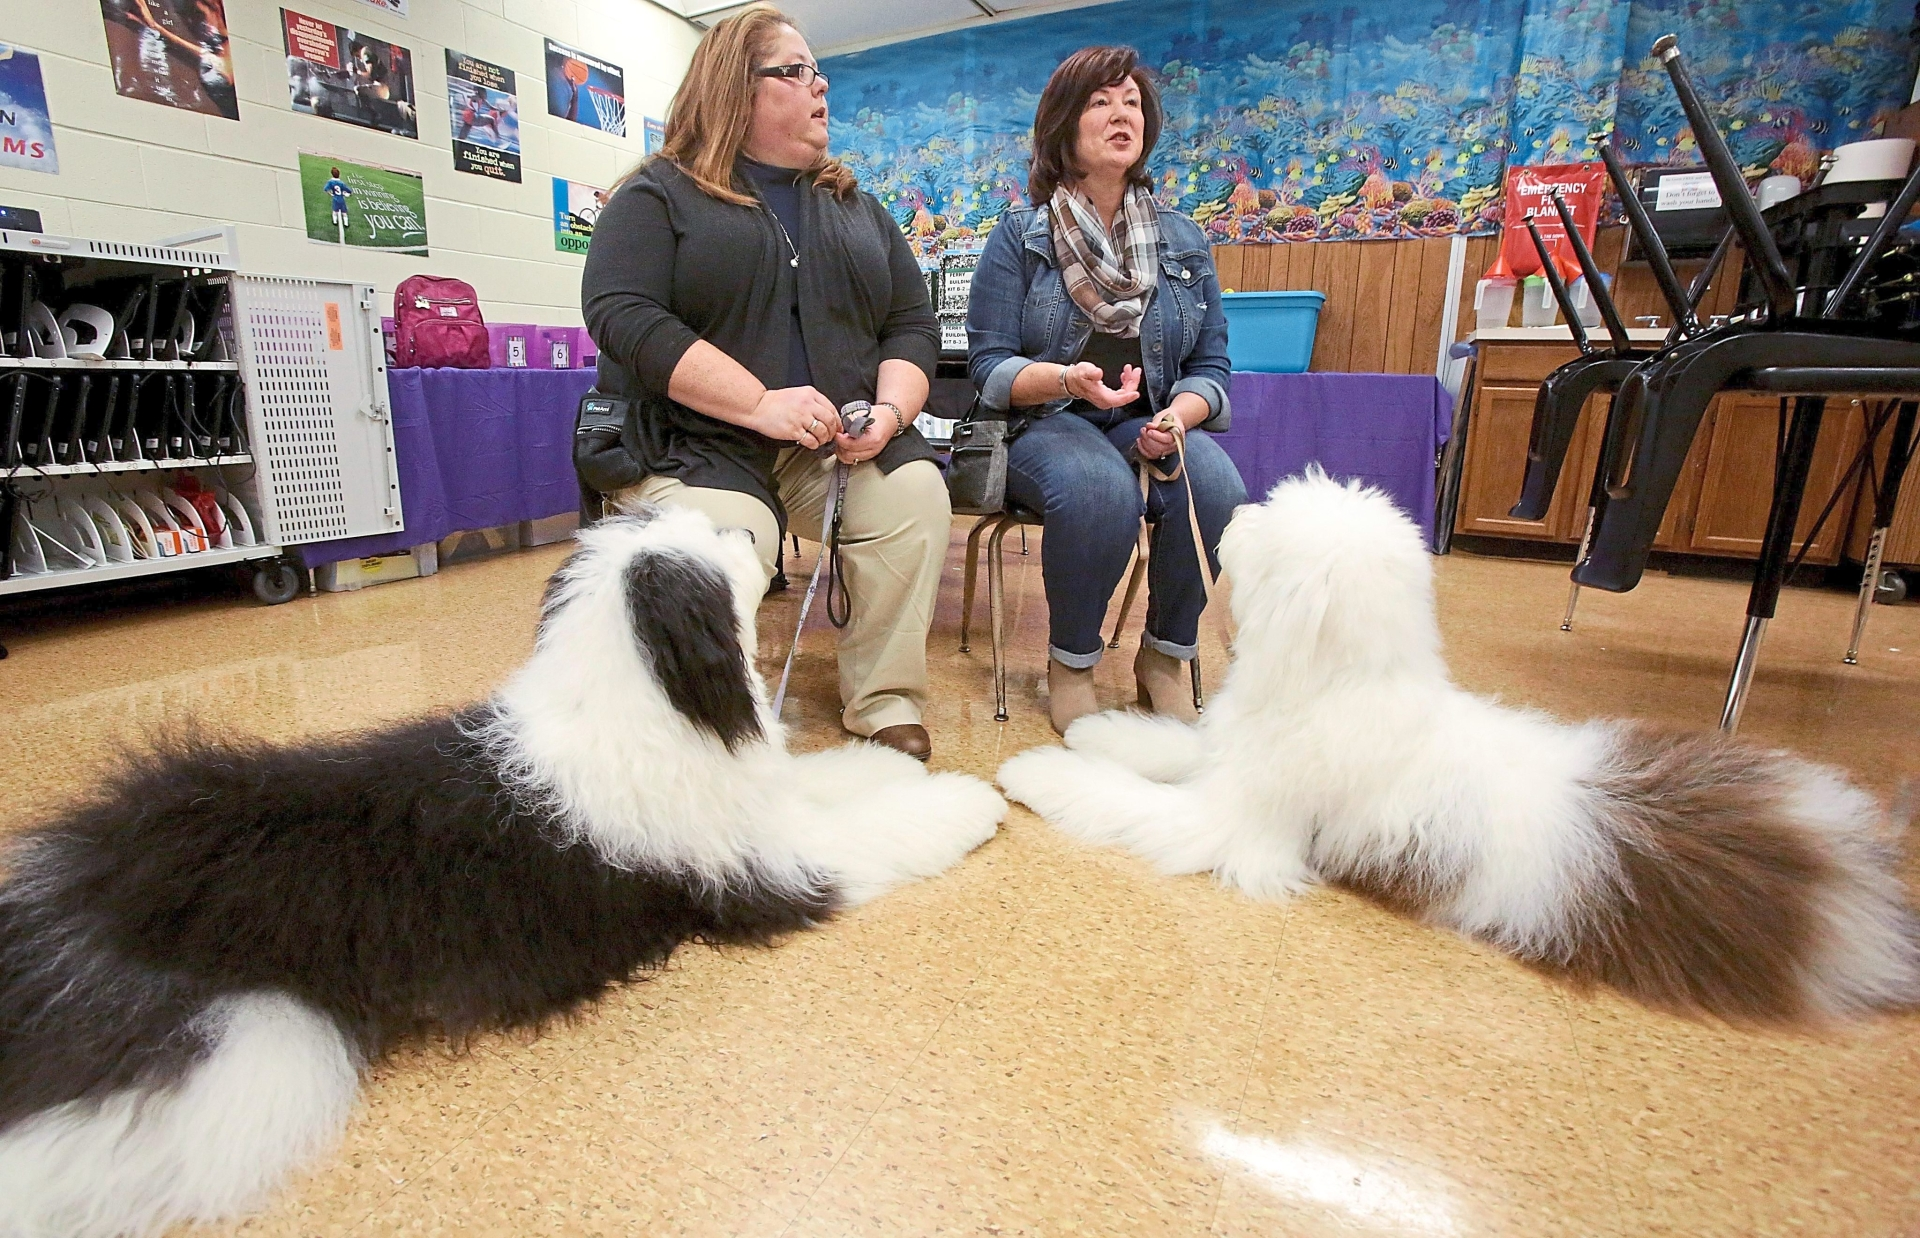 Evans (left) and her mother Kirker talk about the work it takes to train a therapy dog. Their dogs Harley Grace (left) and Charlie Brown are Newfoundland and Old English sheepdog mixes.